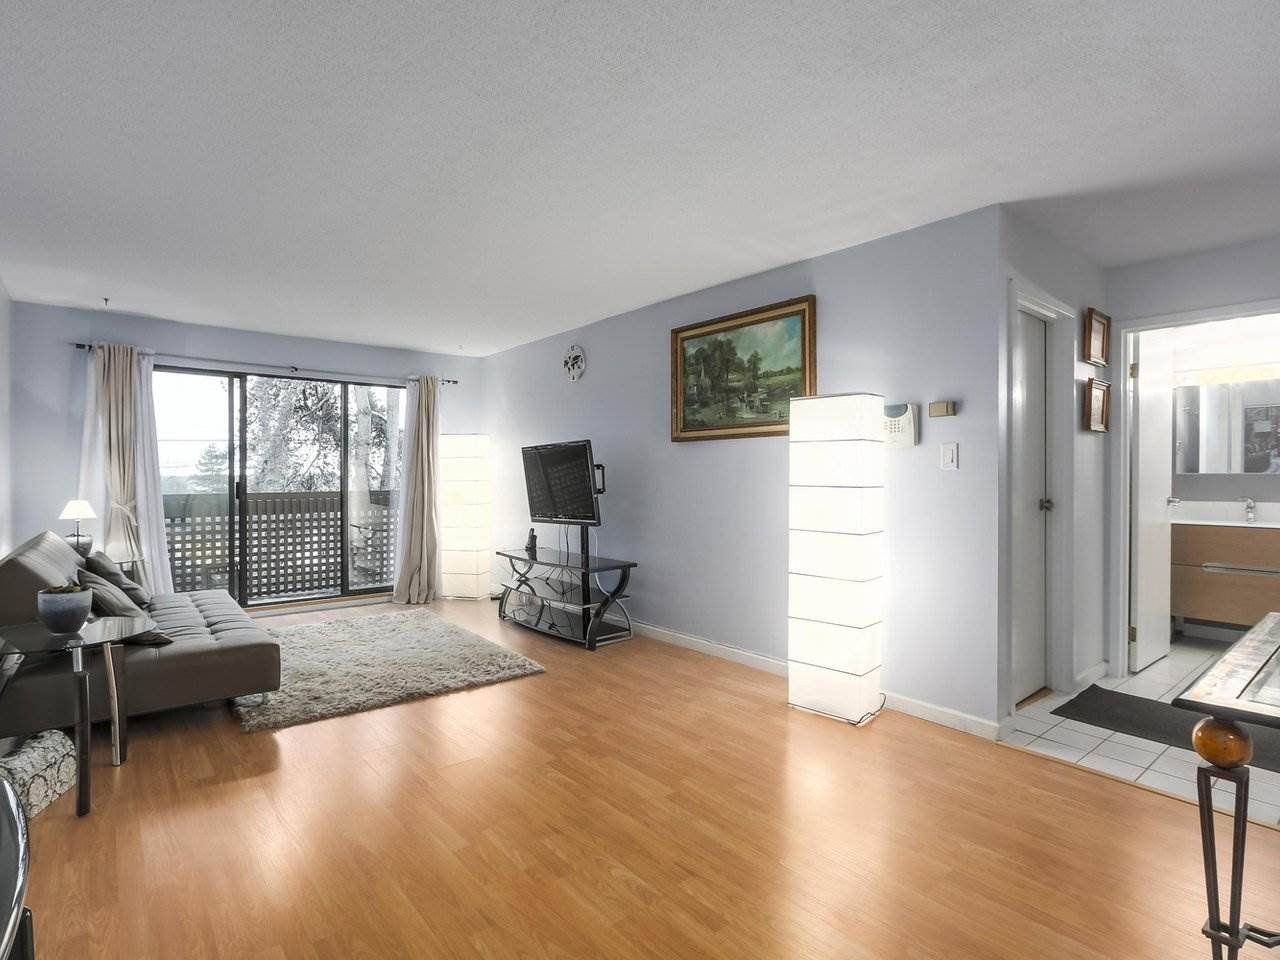 """Main Photo: 303 7151 EDMONDS Street in Burnaby: Highgate Condo for sale in """"BAKERVIEW"""" (Burnaby South)  : MLS®# R2331662"""